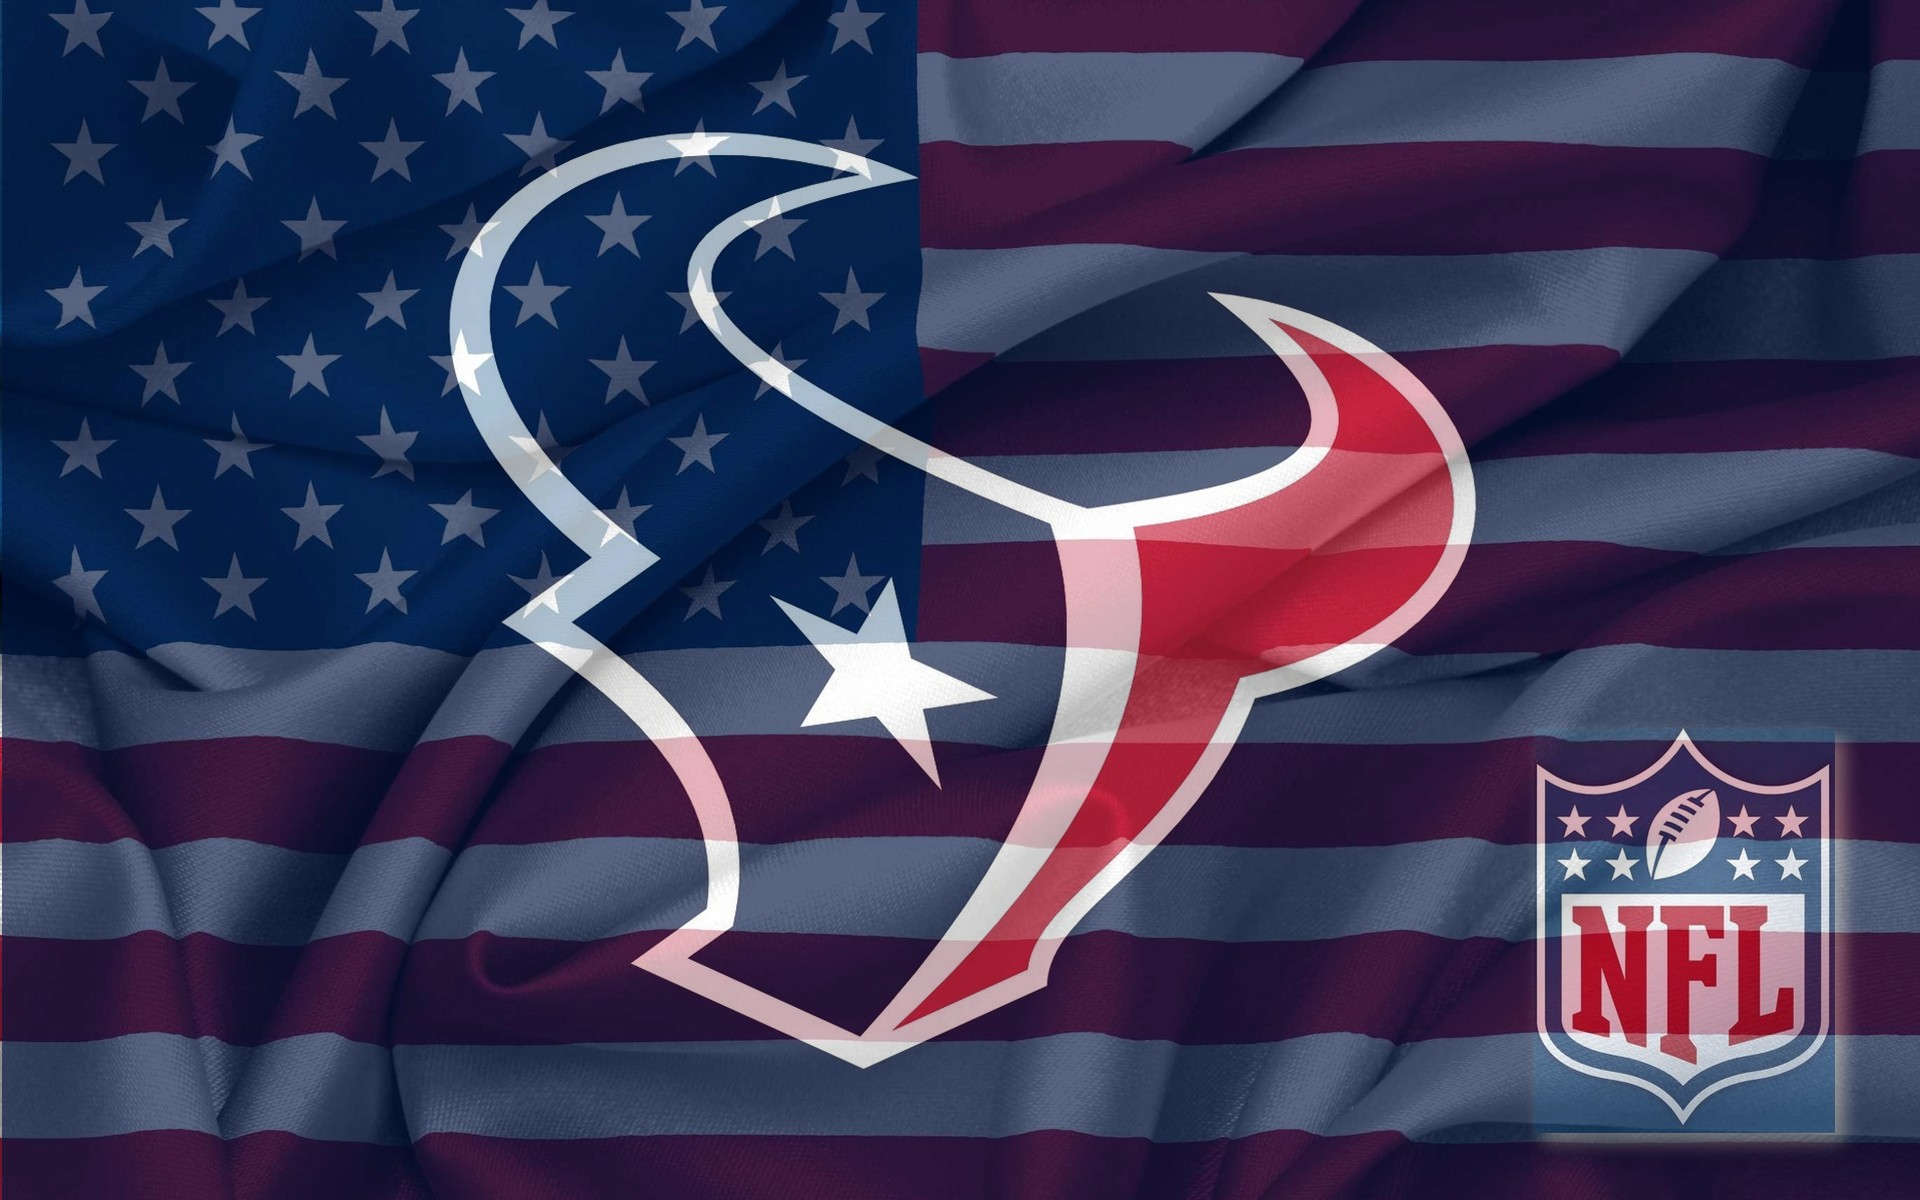 Visit ESPN to view the Houston Texans team schedule for the current and previous seasons